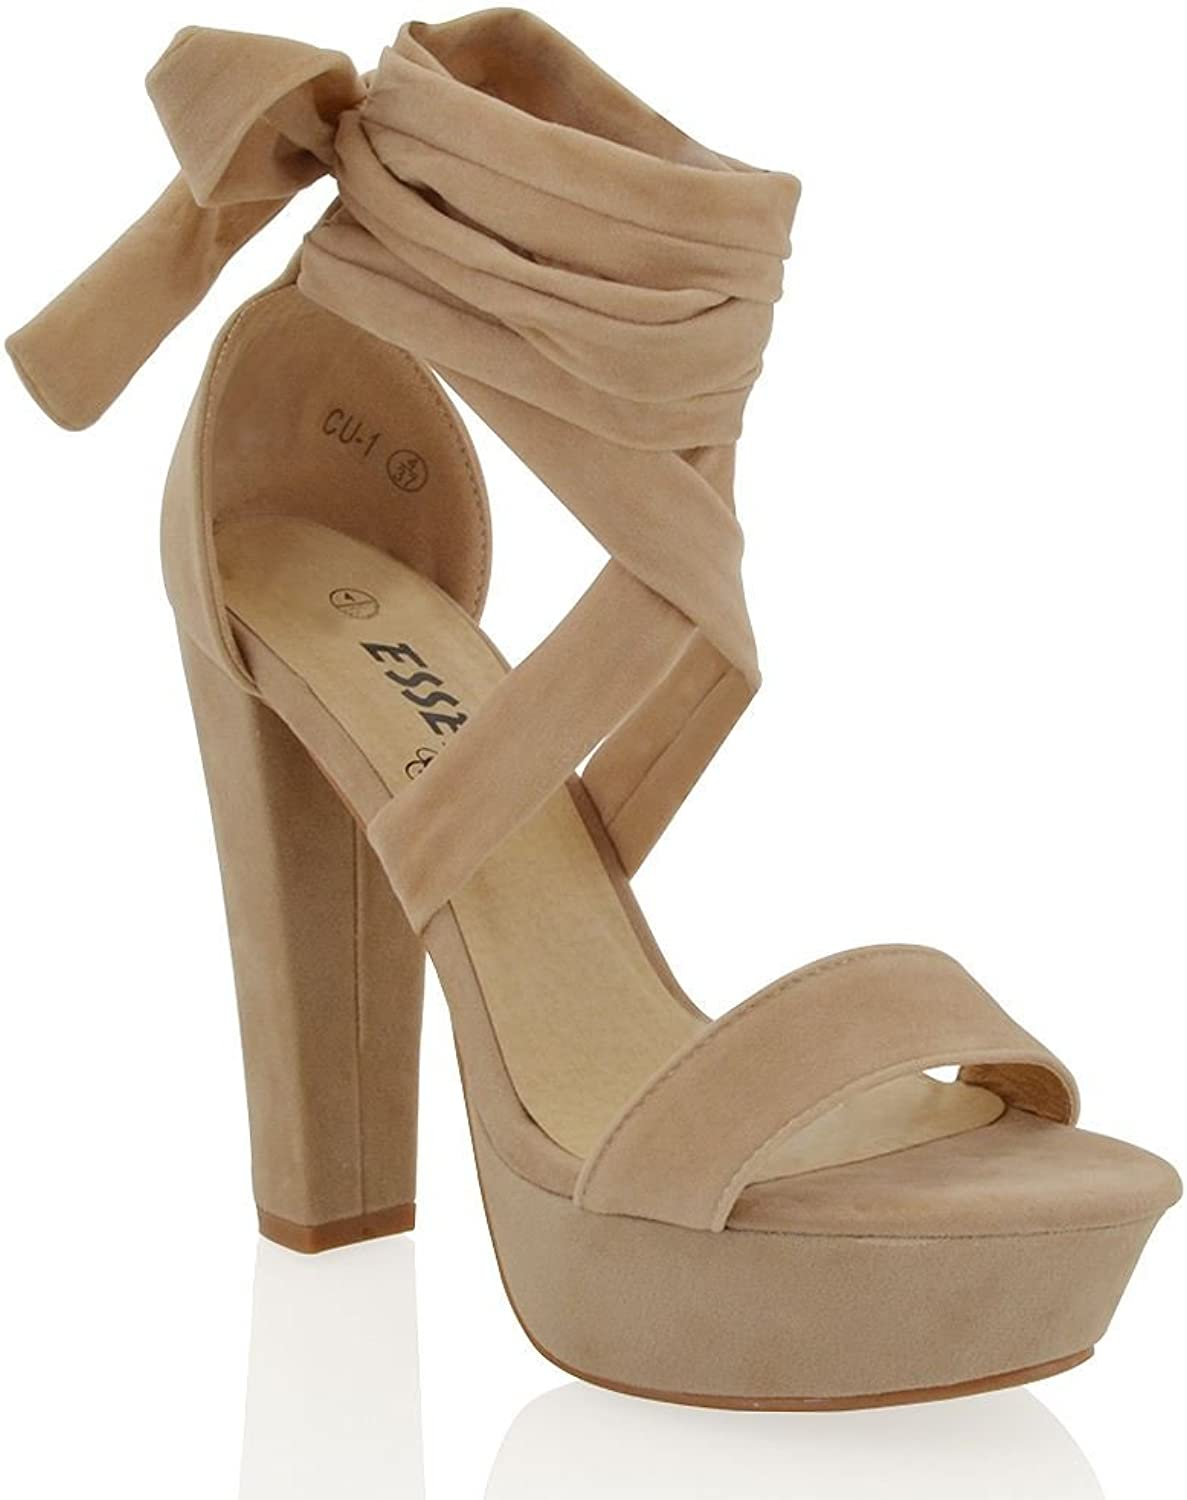 ESSEX GLAM Womens Block Chunky Heels Platform Lace Up Faux Suede Strappy Tie Up Sandals shoes